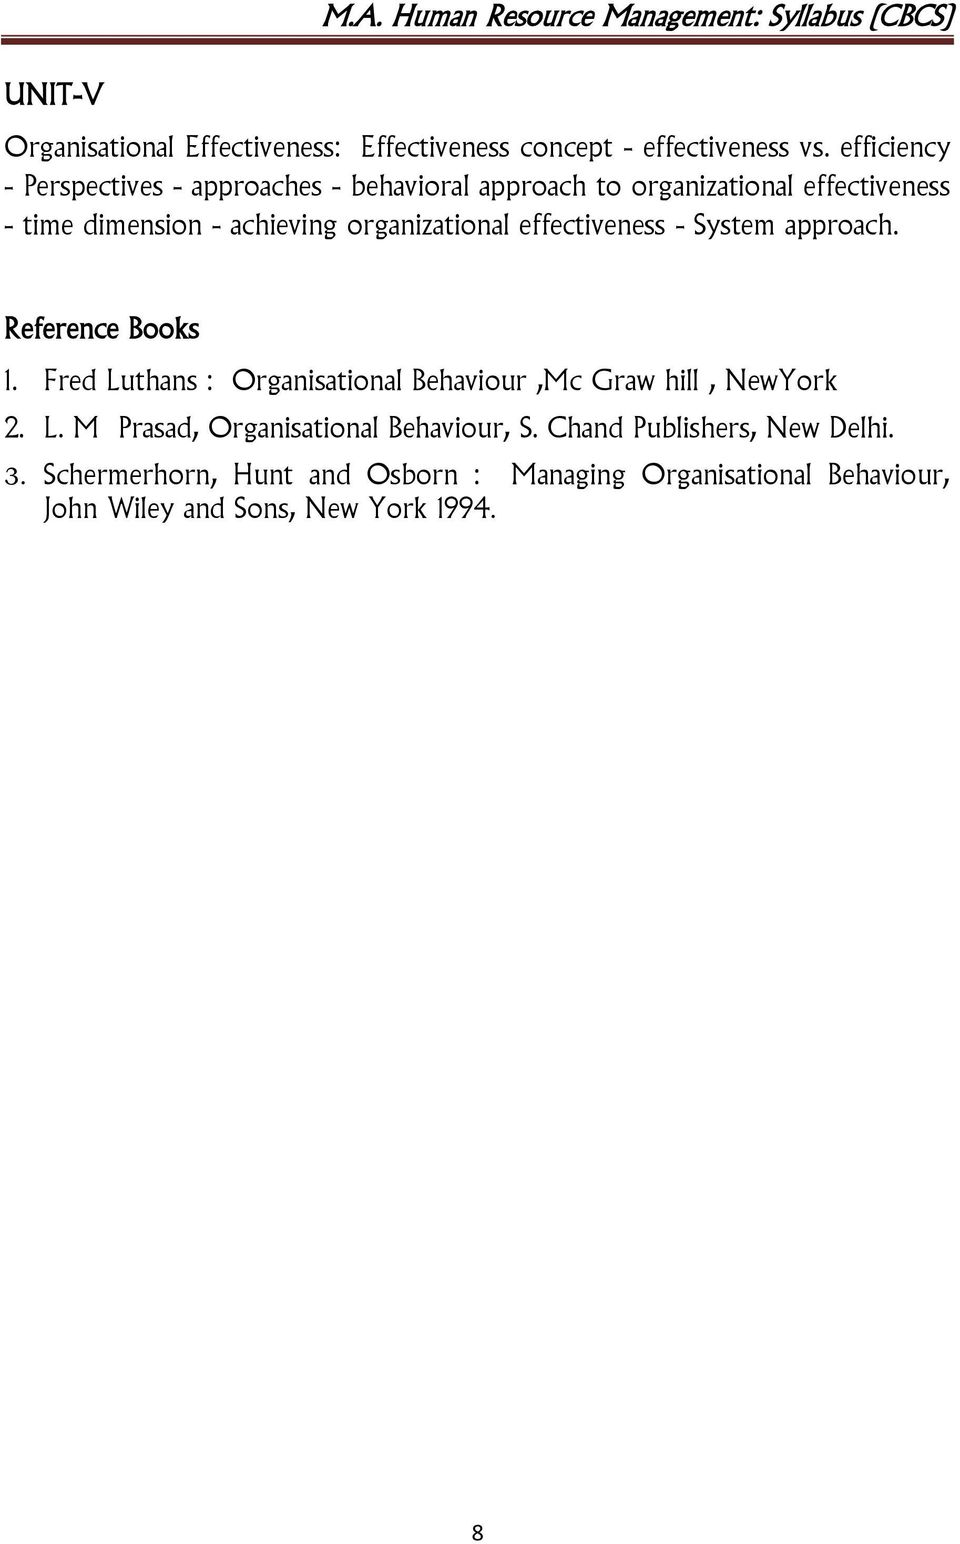 organizational effectiveness - System approach. Reference Books 1.